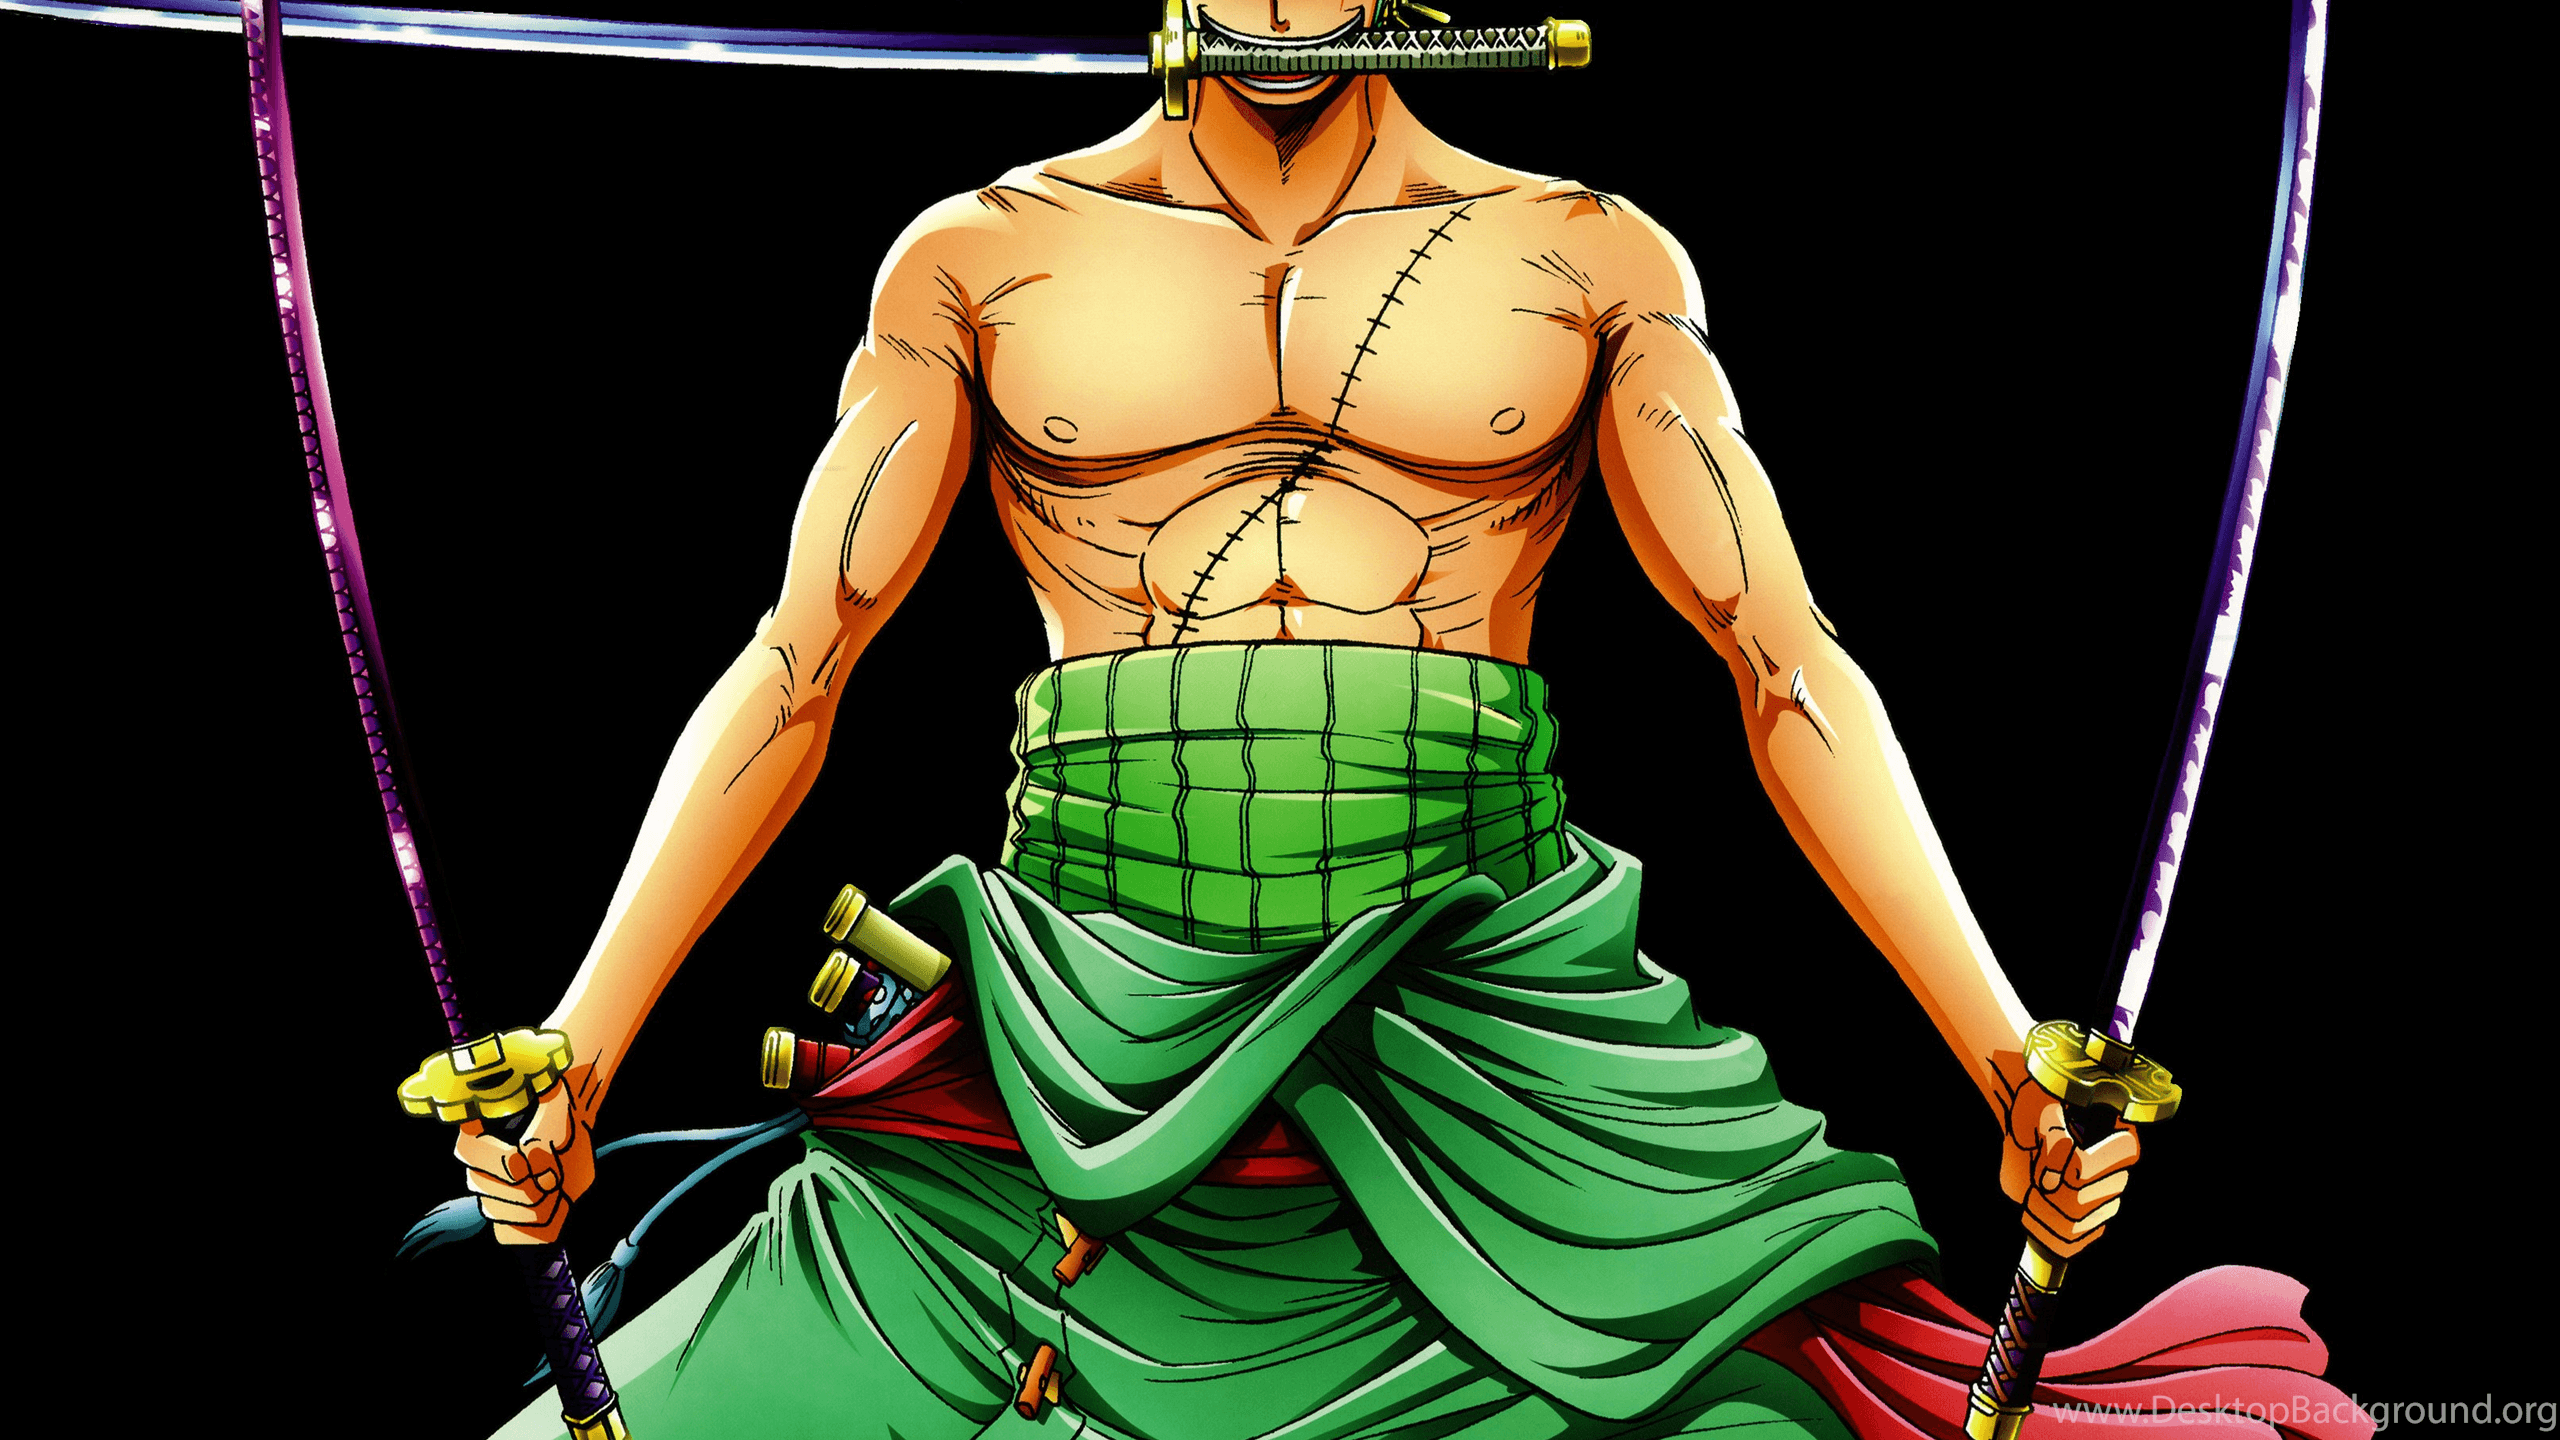 Amazing Anime Wallpaper Zoro for Android